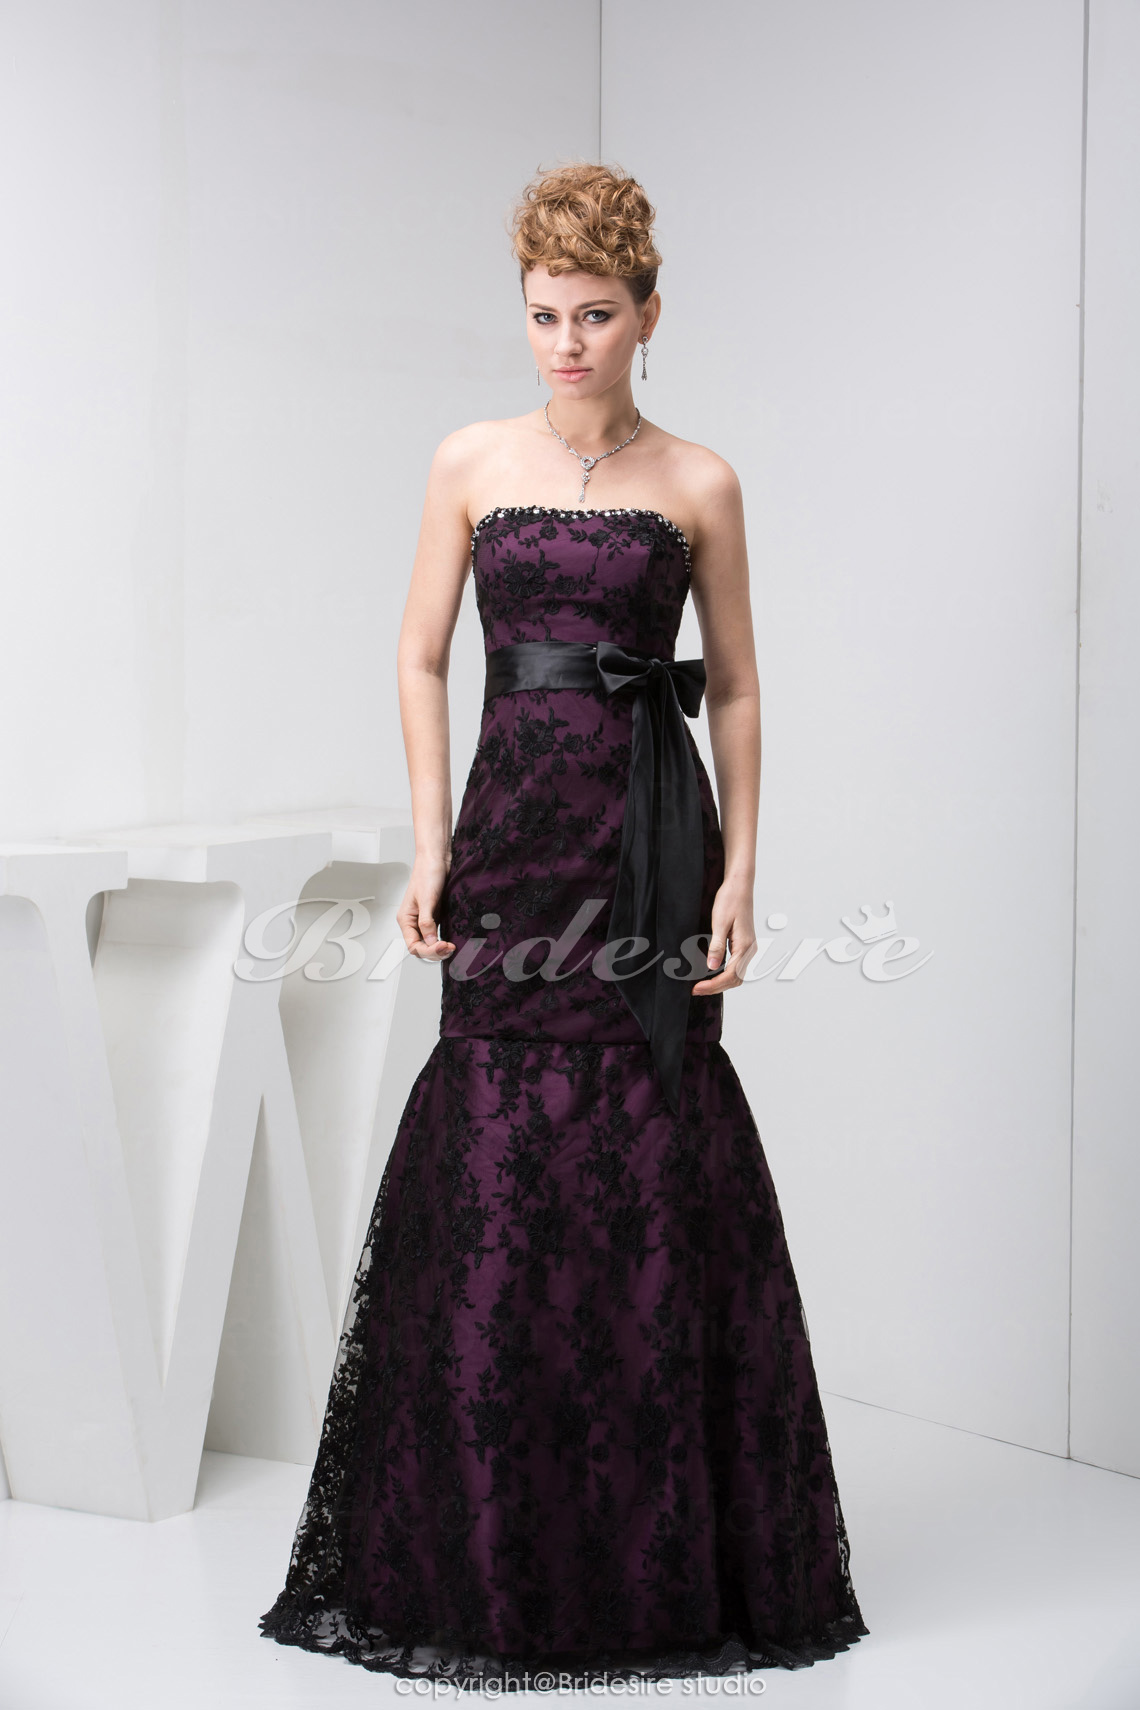 Trumpet/Mermaid Strapless Floor-length Sleeveless Satin Lace Dre